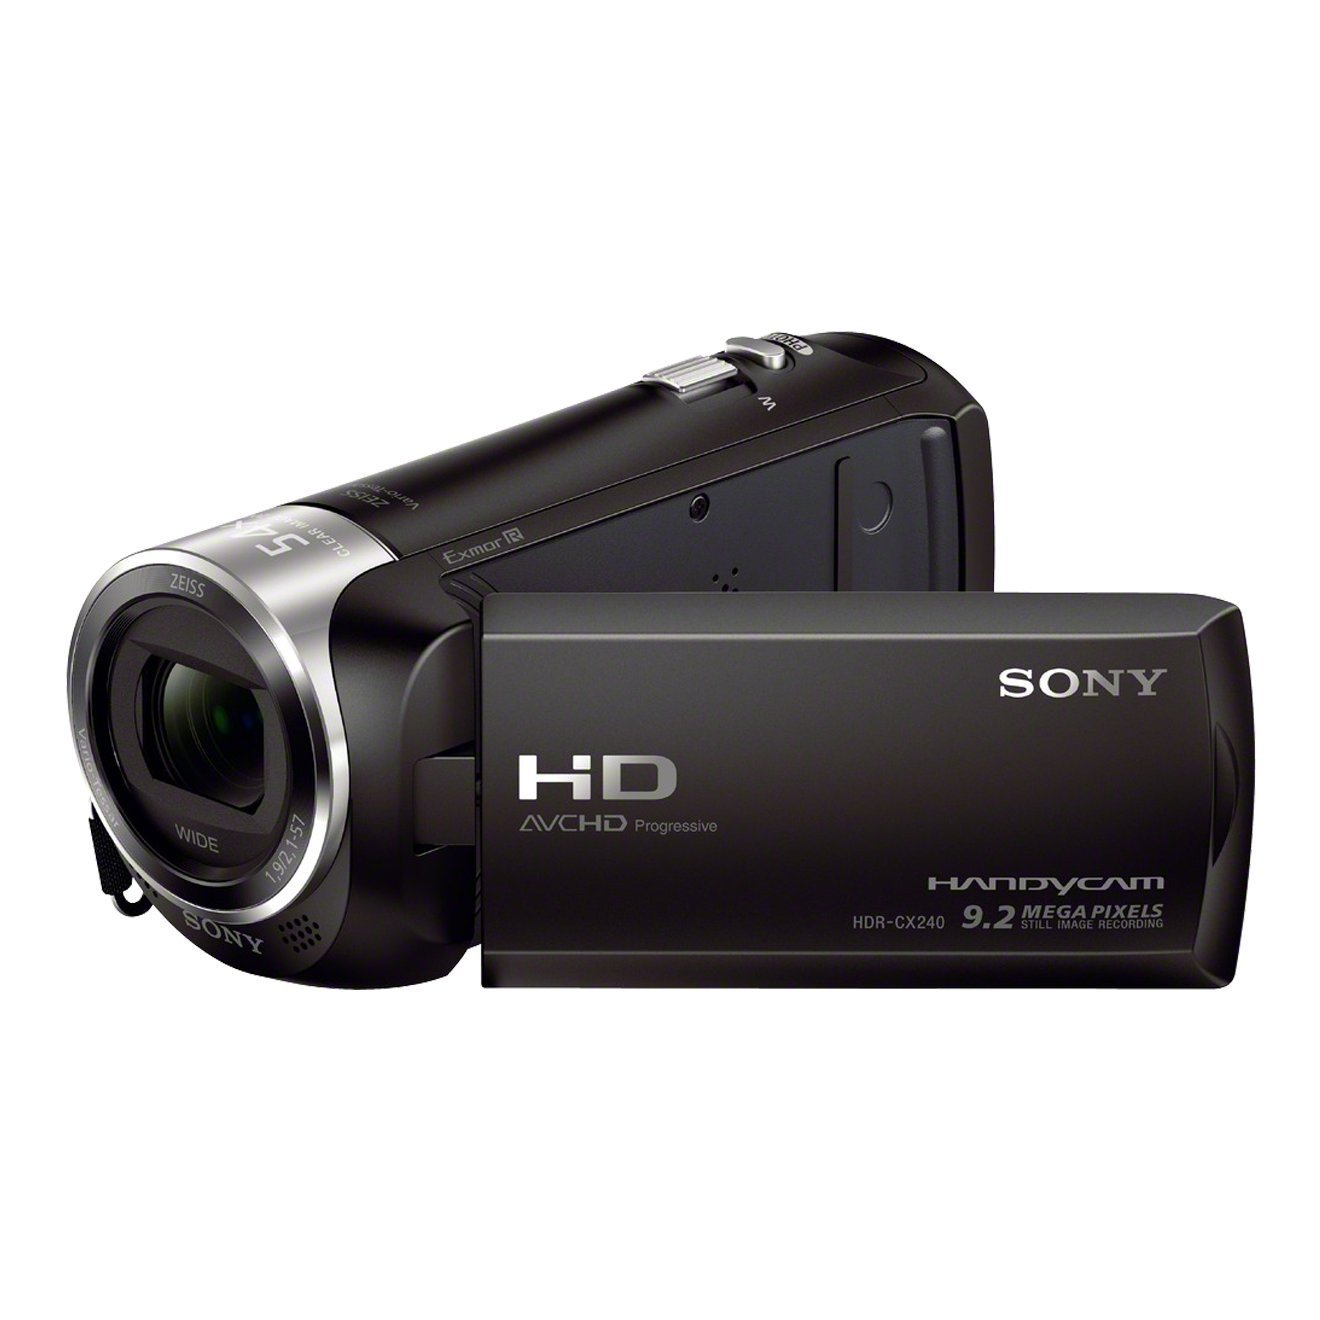 "Sony Handycam® HDR-CX240E con sensor CMOS Exmor R® - Videocámara (CMOS, 25,4 / 5,8 mm (1 / 5.8""), 2,1 - 57 mm, 29,8 - 804 mm, Tarjeta de memoria, MicroSD (TransFlash), MS Micro (M2), SDHC, SDXC) Negro"